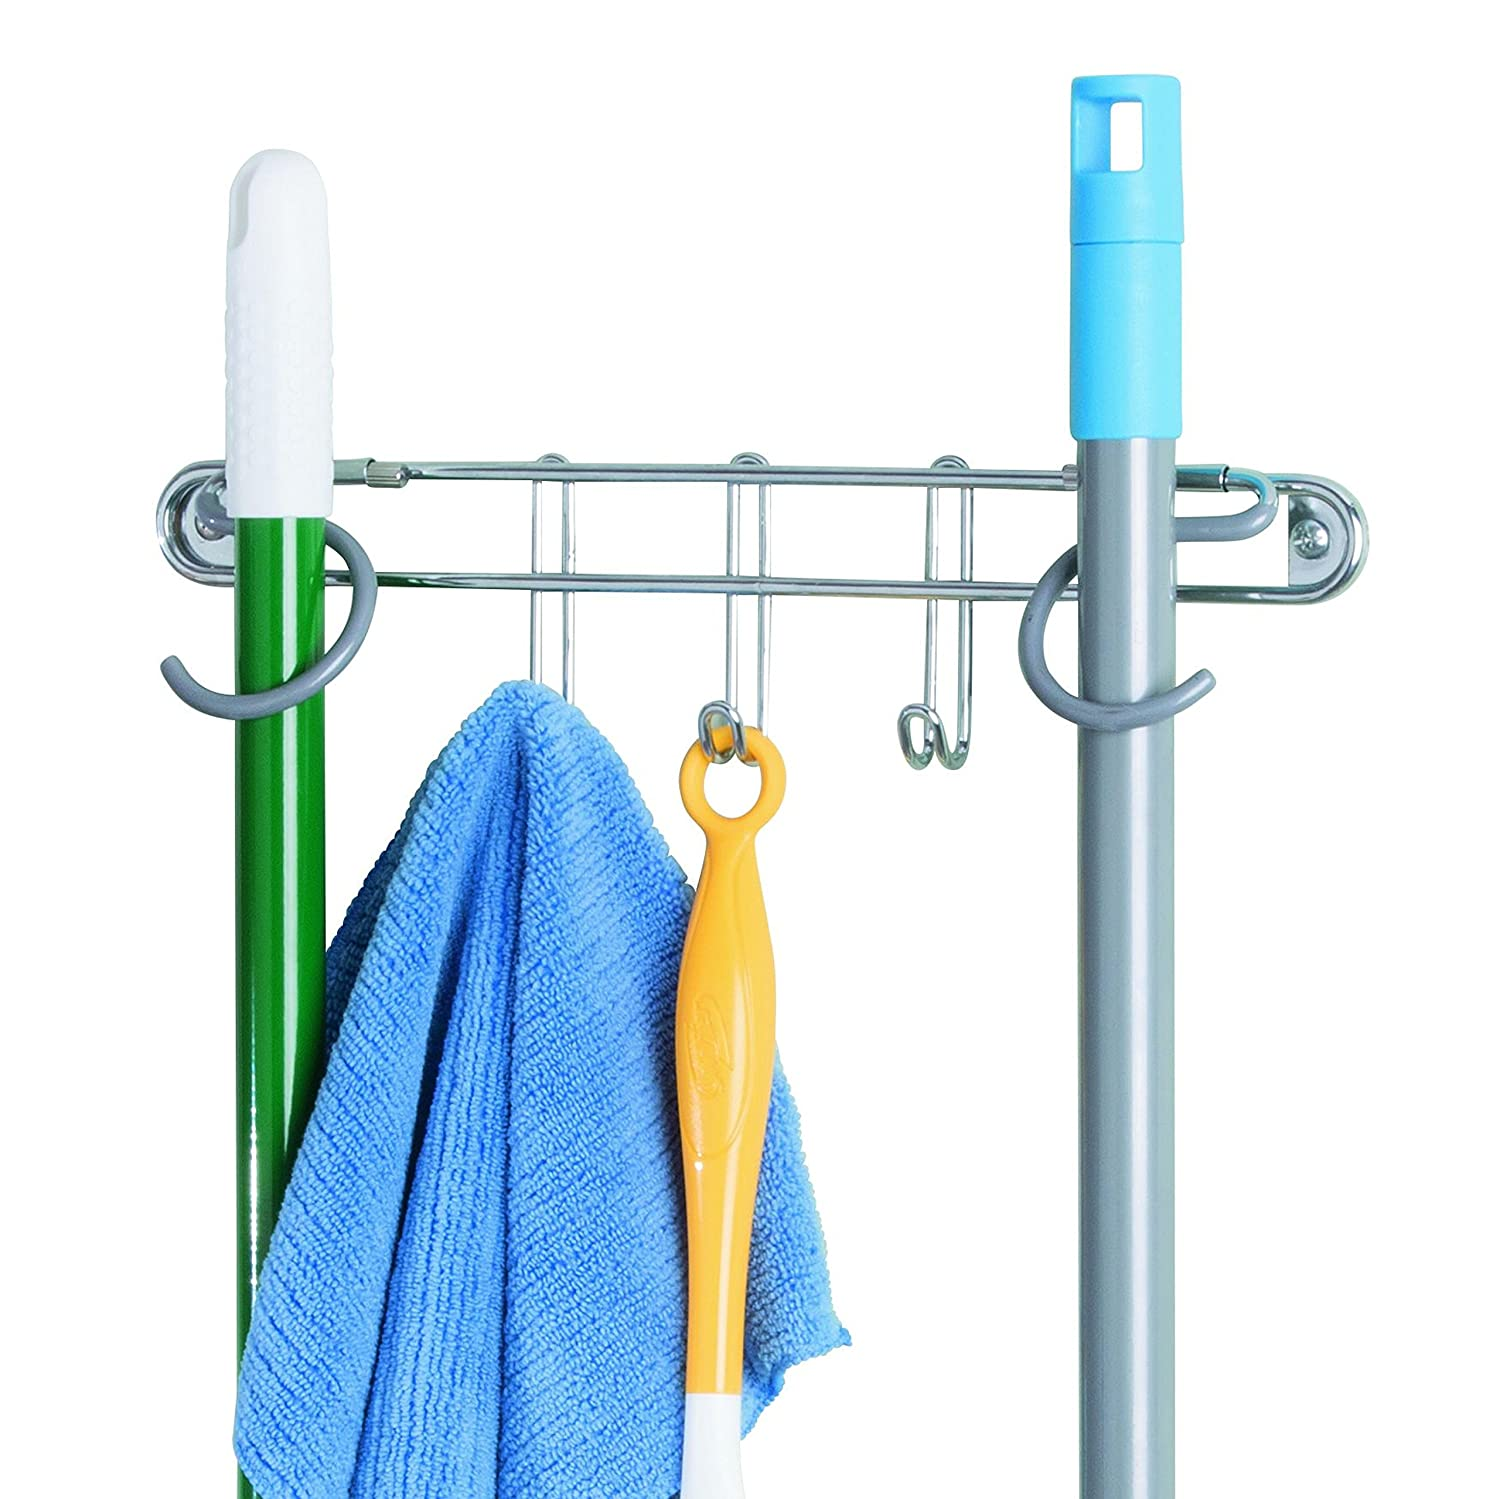 InterDesign Classico Wall Mount Broom and Mop Holder – Hanging Organizer, Chrome/Gray